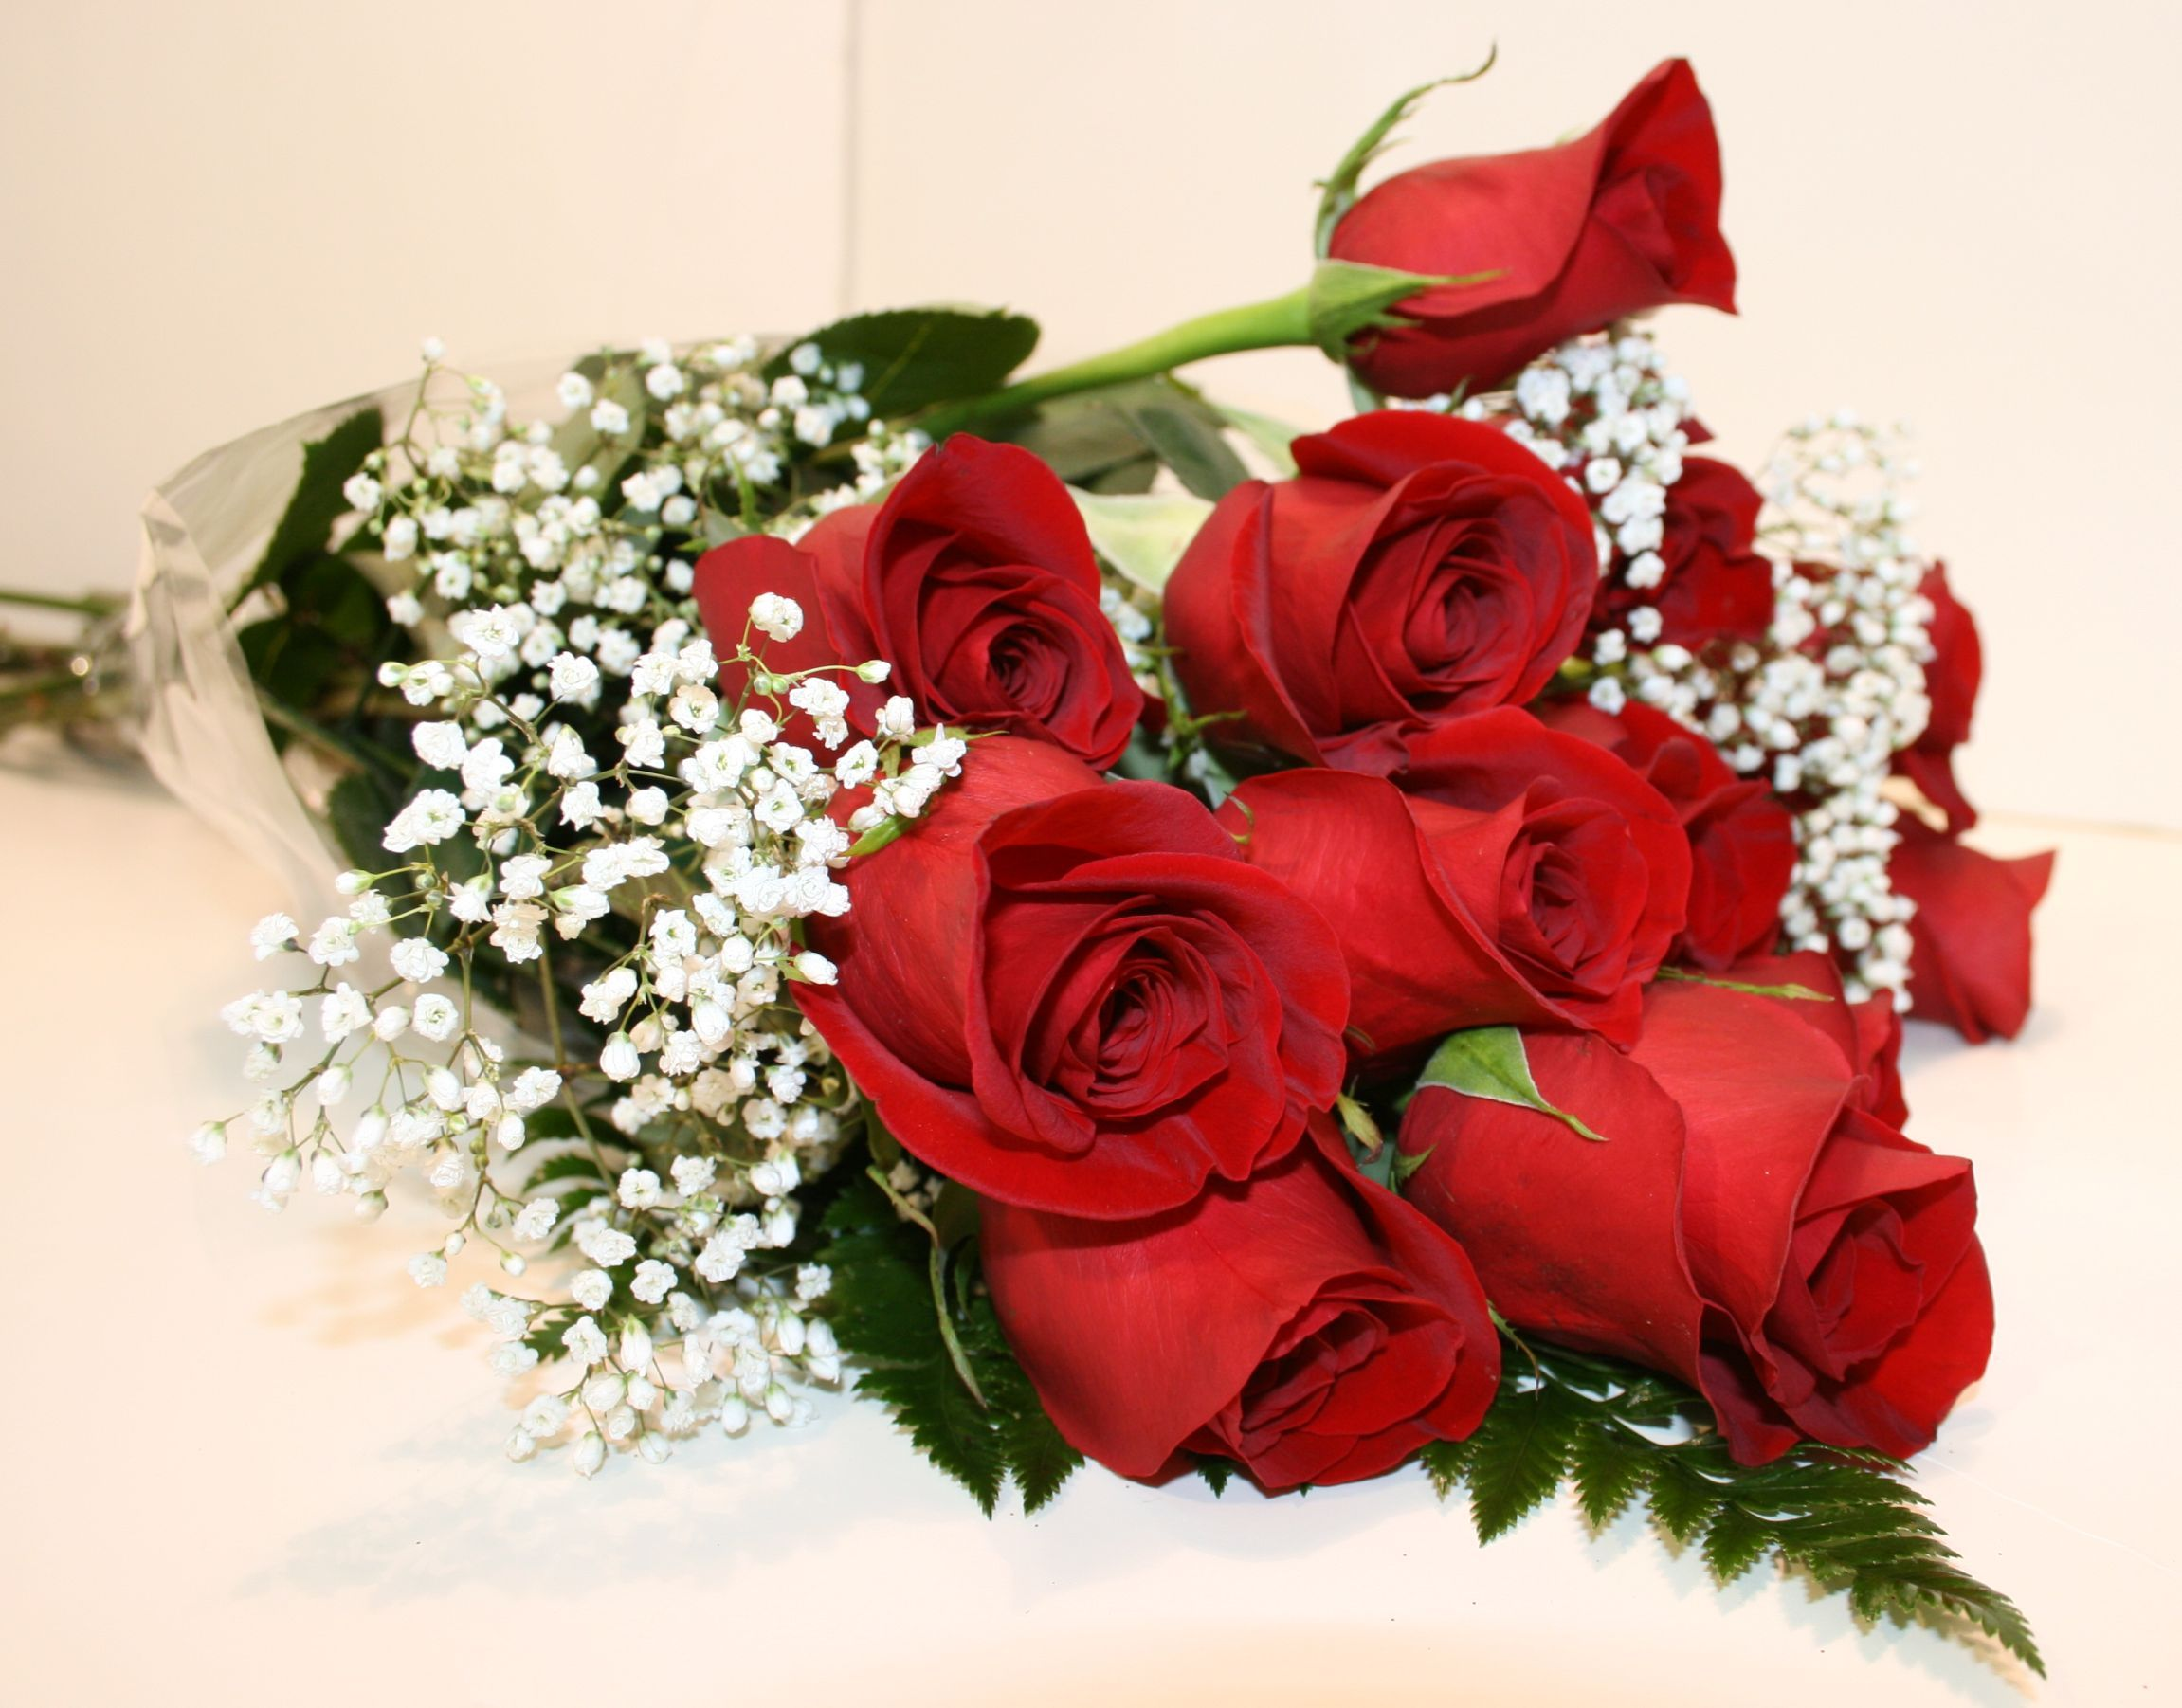 Best flowers for valentines day be my valentine valentines day best flowers for valentines day be my valentine valentines day is february izmirmasajfo Choice Image